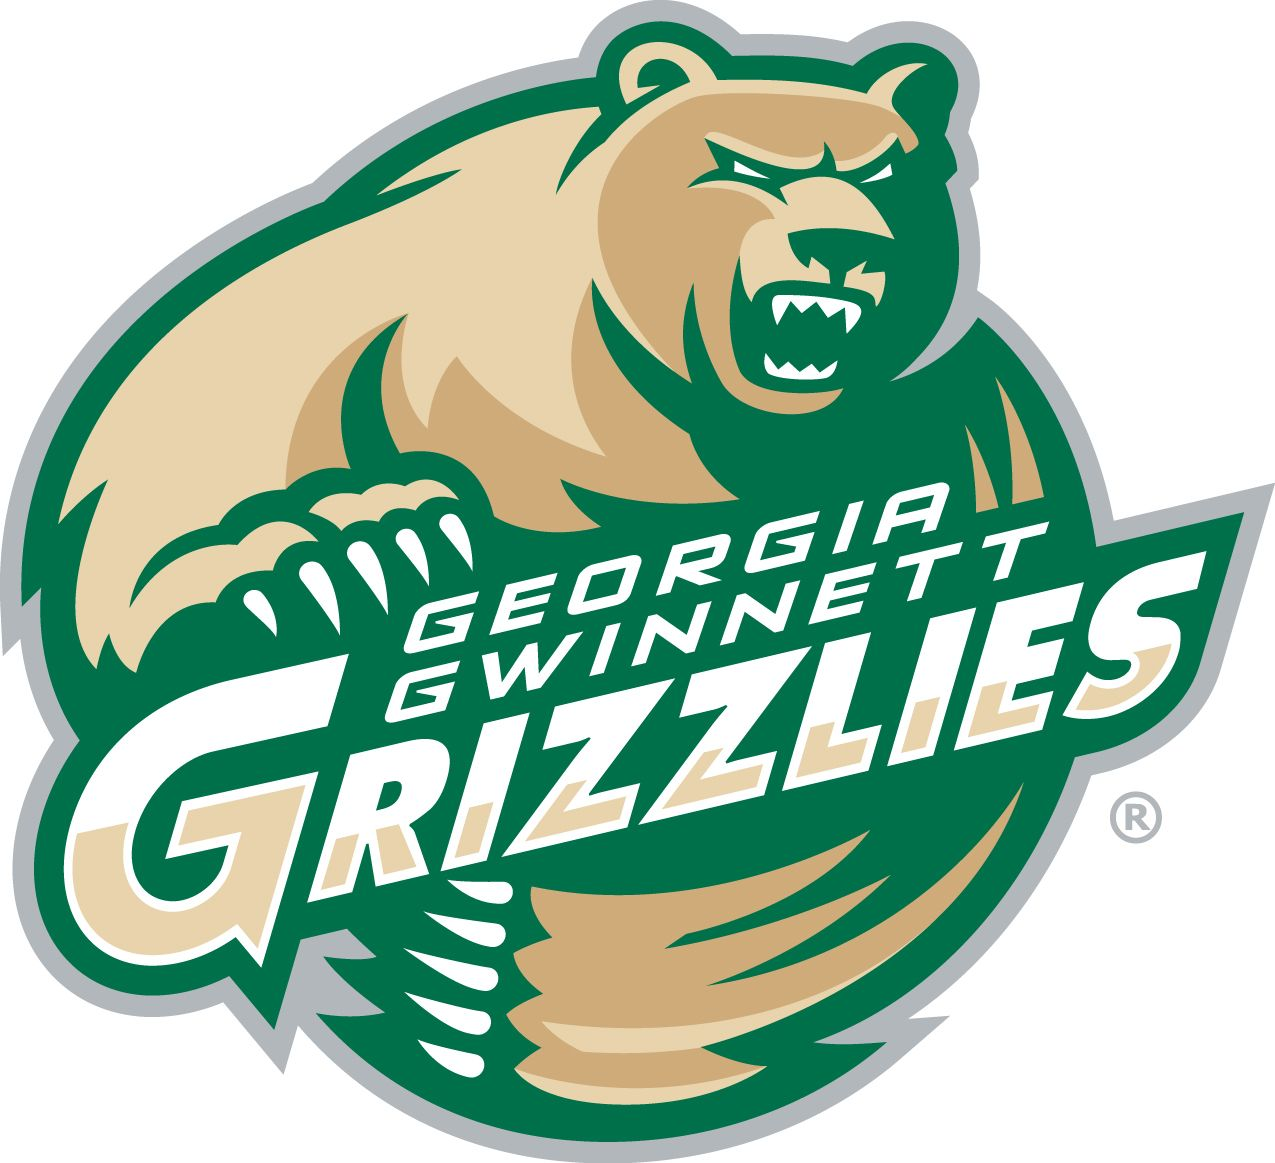 Grizzlies Georgia Gwinnett College Lawrenceville Georgia Div Association Of Independent Institutions Grizzlies College Logo Hockey Logos Sports Logo